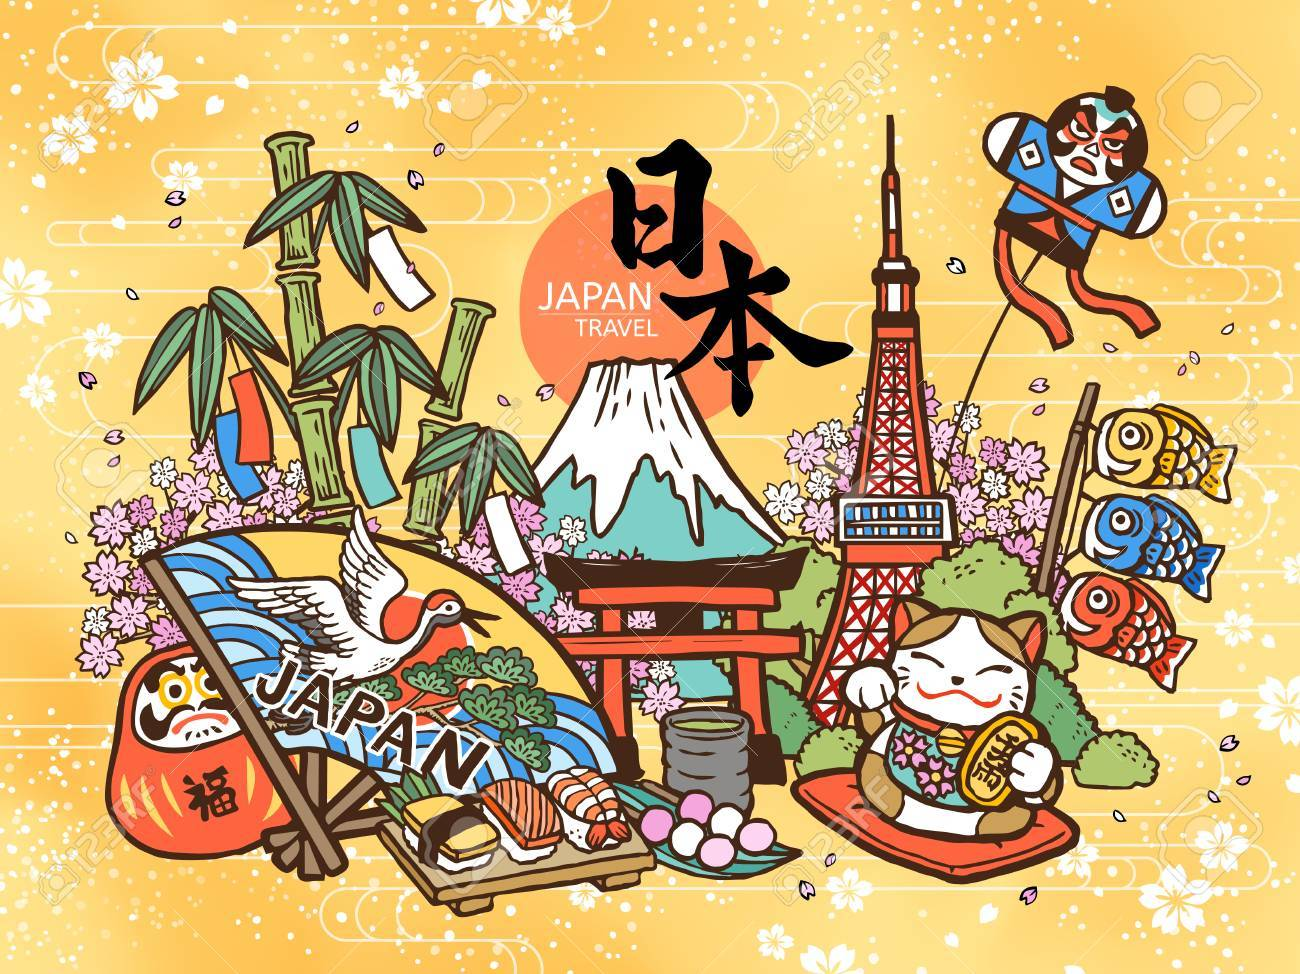 Lovely Japan travel concept, cute hand drawn style with famous attractions and symbols, Japan country name and fortune in Japanese on the daruma - 88968639